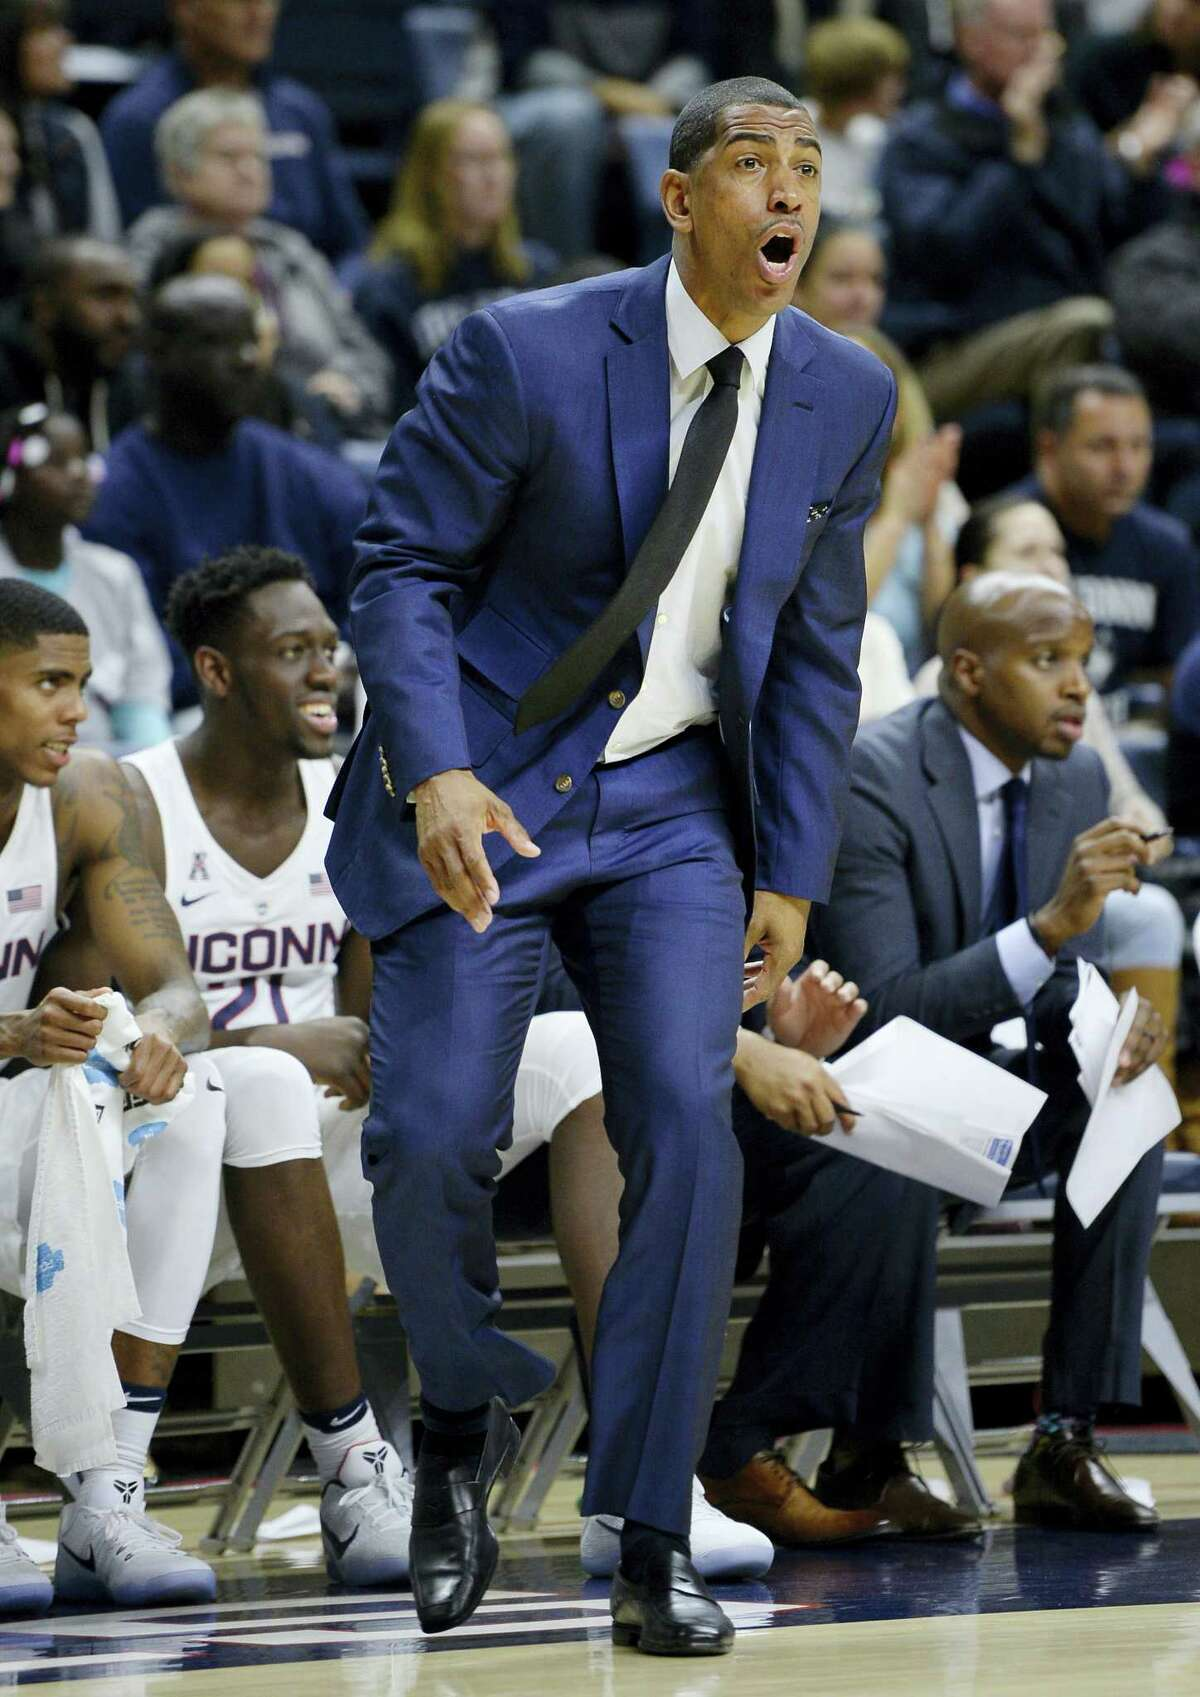 UConn coach Kevin Ollie is seen here during a game earlier this season.